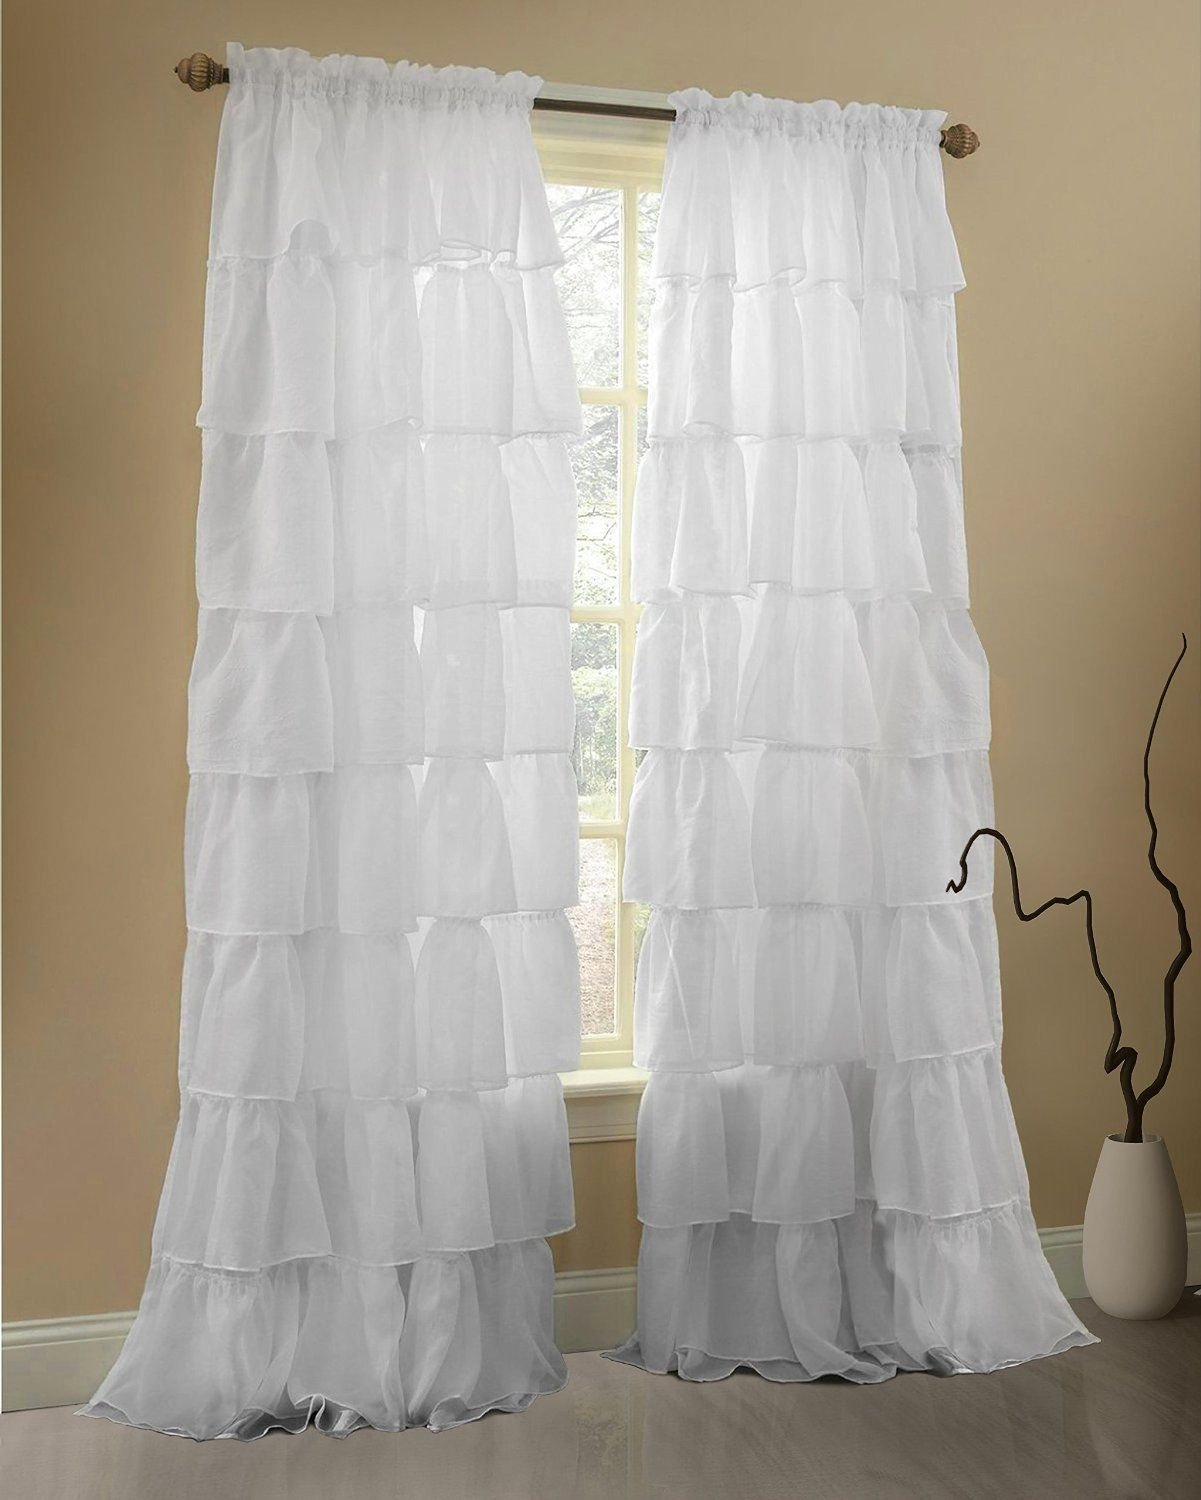 Cheap White Ruffle Window Curtains, Find White Ruffle Window Inside Sheer Voile Waterfall Ruffled Tier Single Curtain Panels (View 16 of 20)